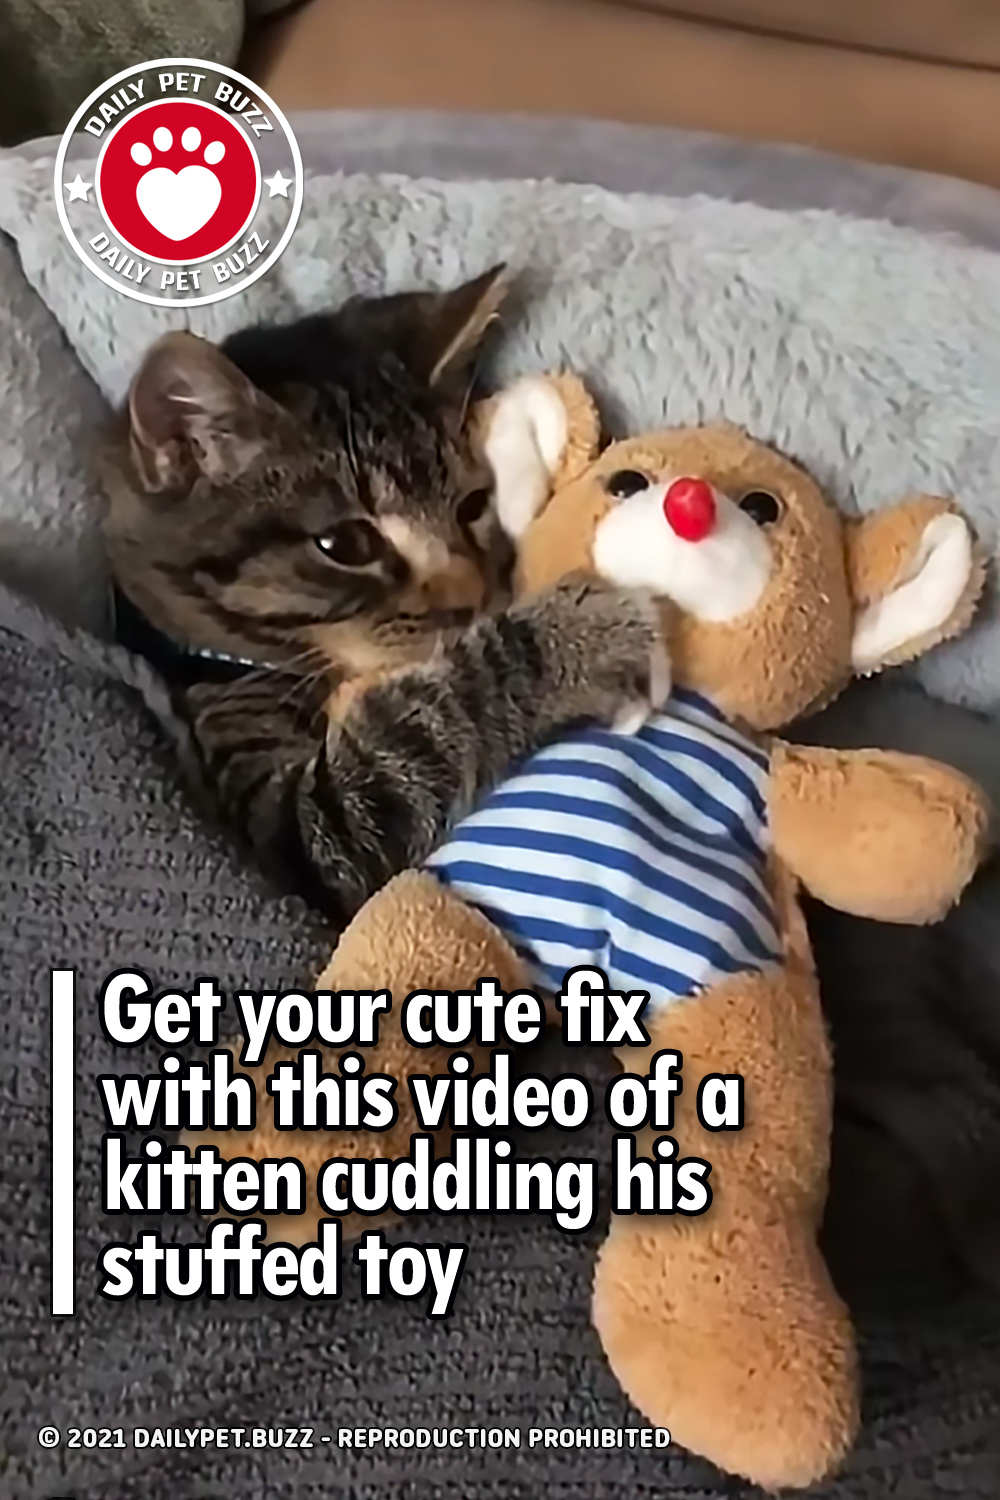 Get your cute fix with this video of a kitten cuddling his stuffed toy